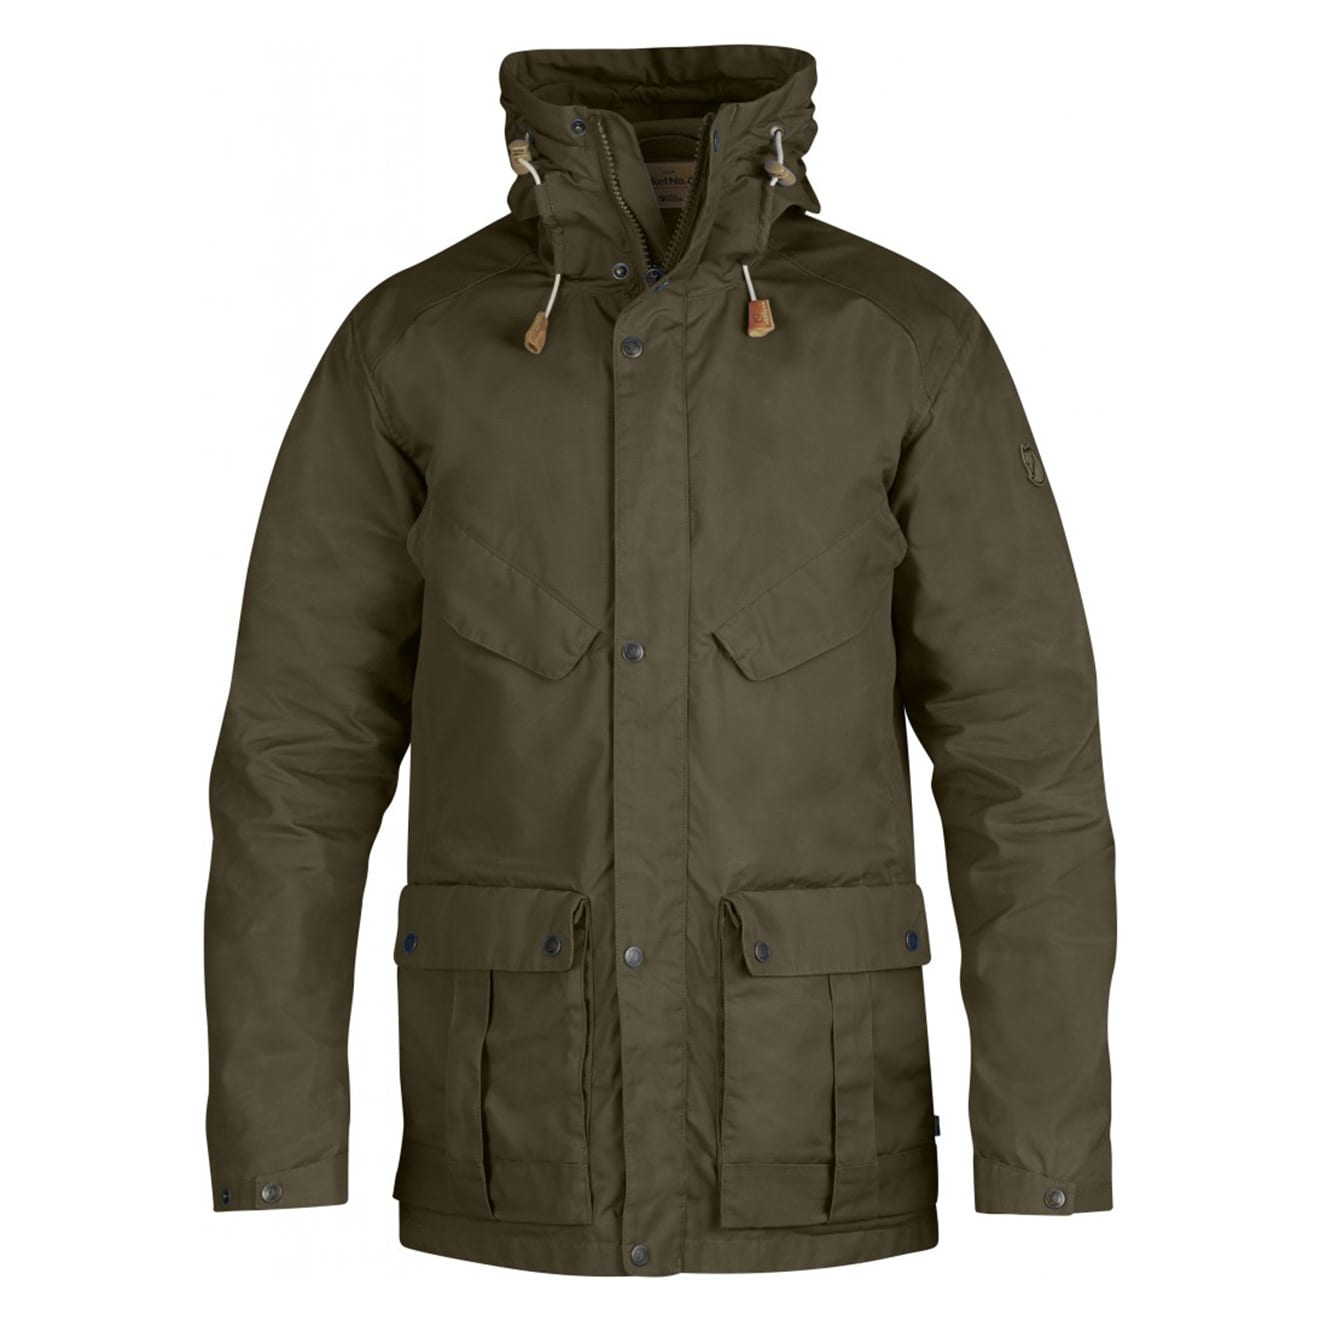 b6063be1f7 Fjallraven Jacket No. 68 Dark Olive - The Sporting Lodge